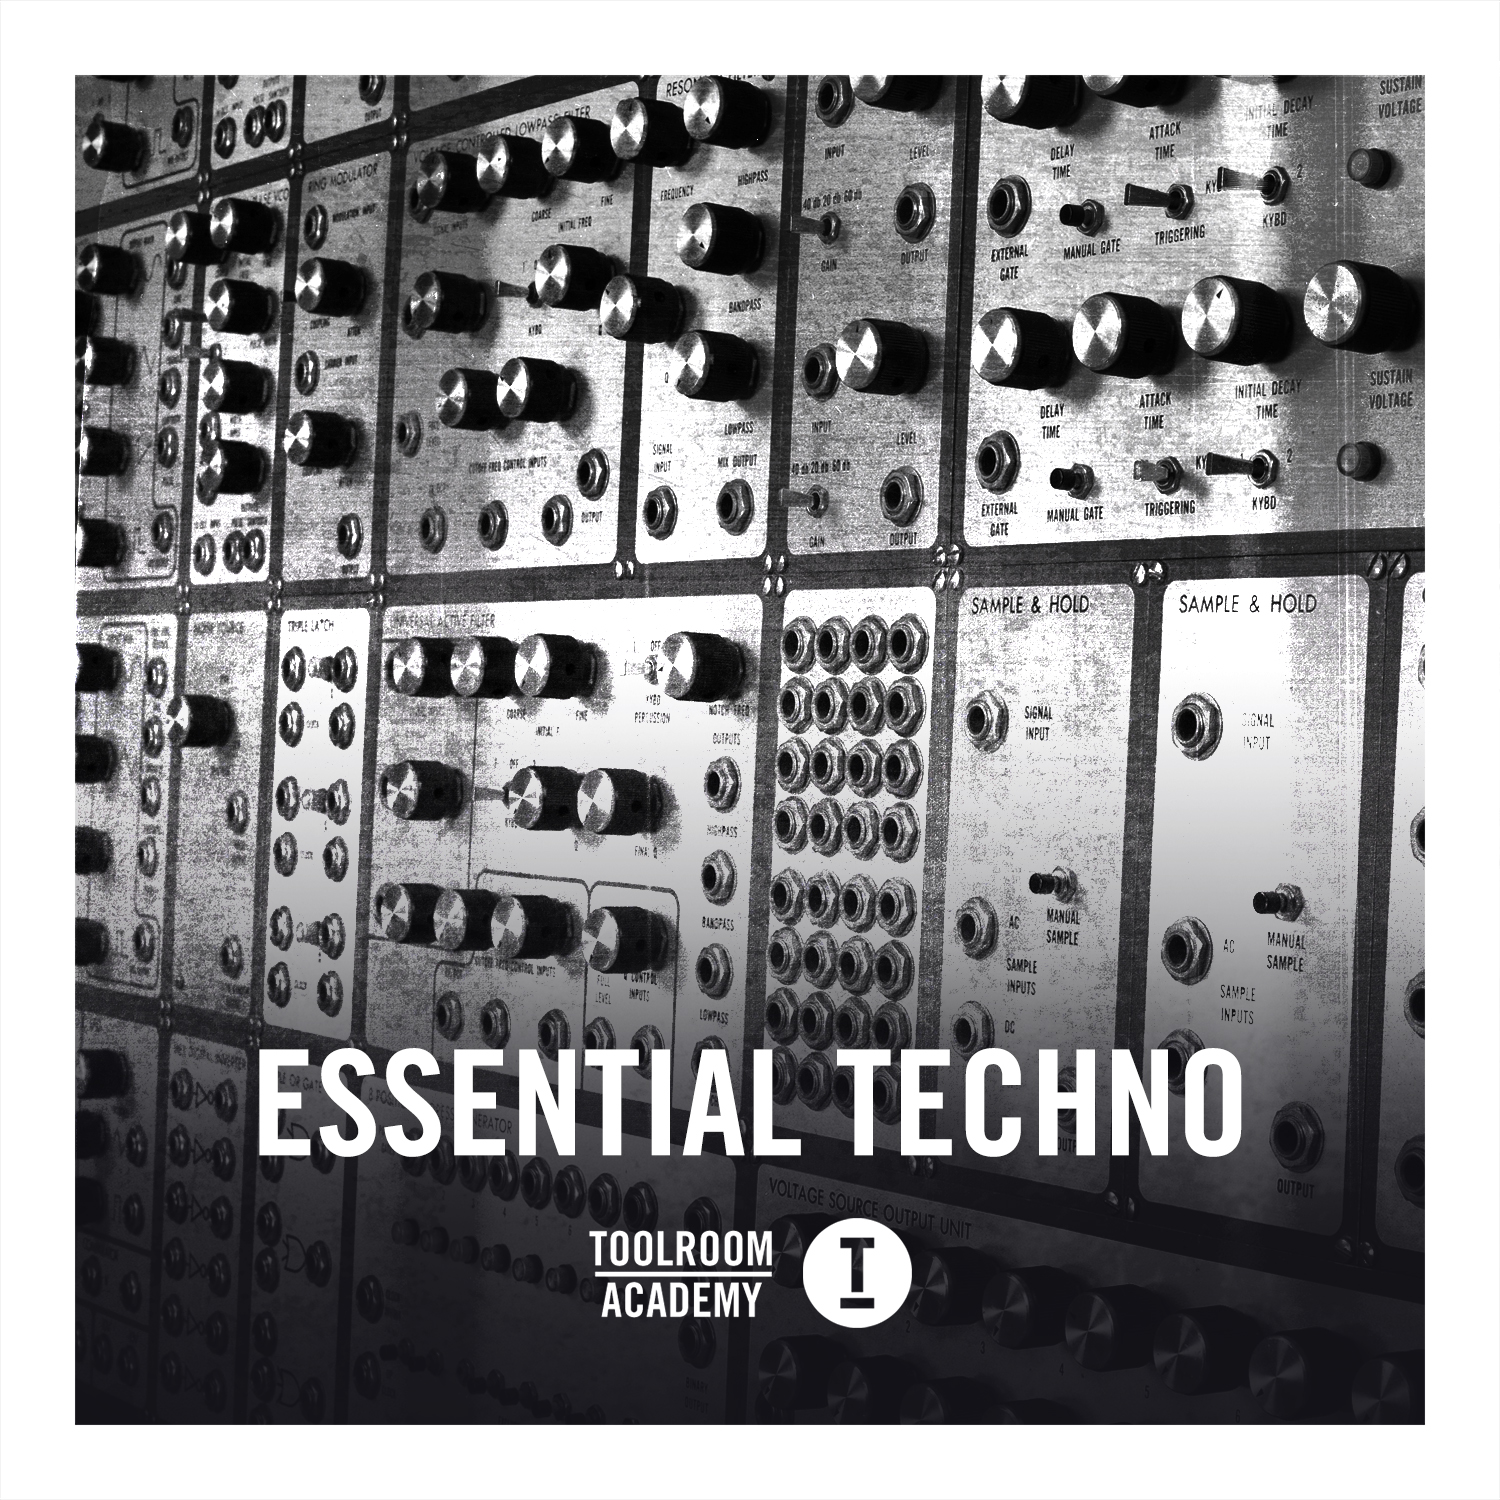 TOOLROOM ACADEMY – ESSENTIAL TECHNO